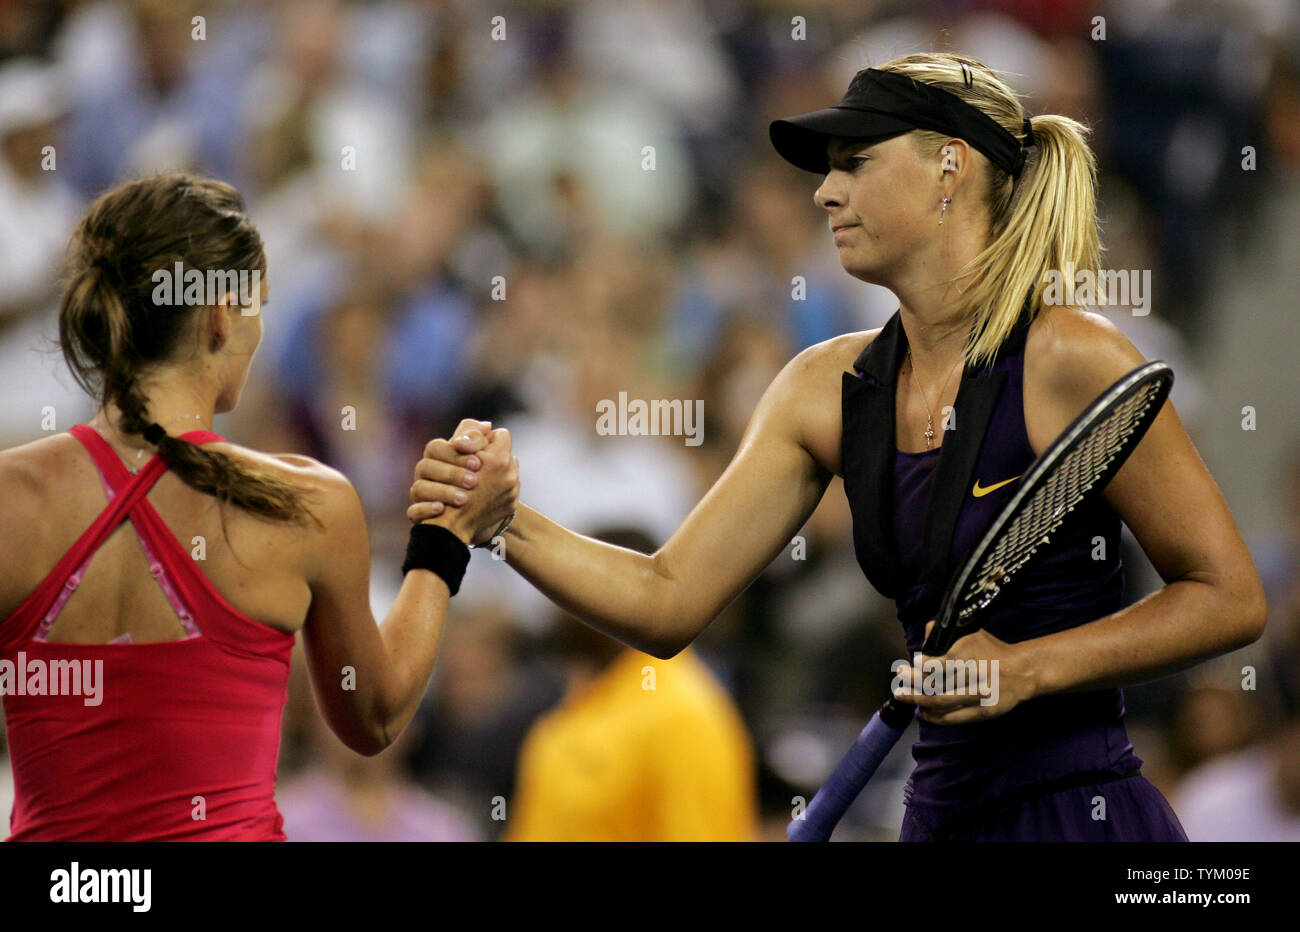 Iveta Benesova (L) of the Czech Republic and Maria Sharapova of Russia shake hands at the conclusion of their match where Sharapova won during second-round action at the U.S. Open held at the National Tennis Center on September 2, 2010 in New York.     UPI Photo/Monika Graff... - Stock Image